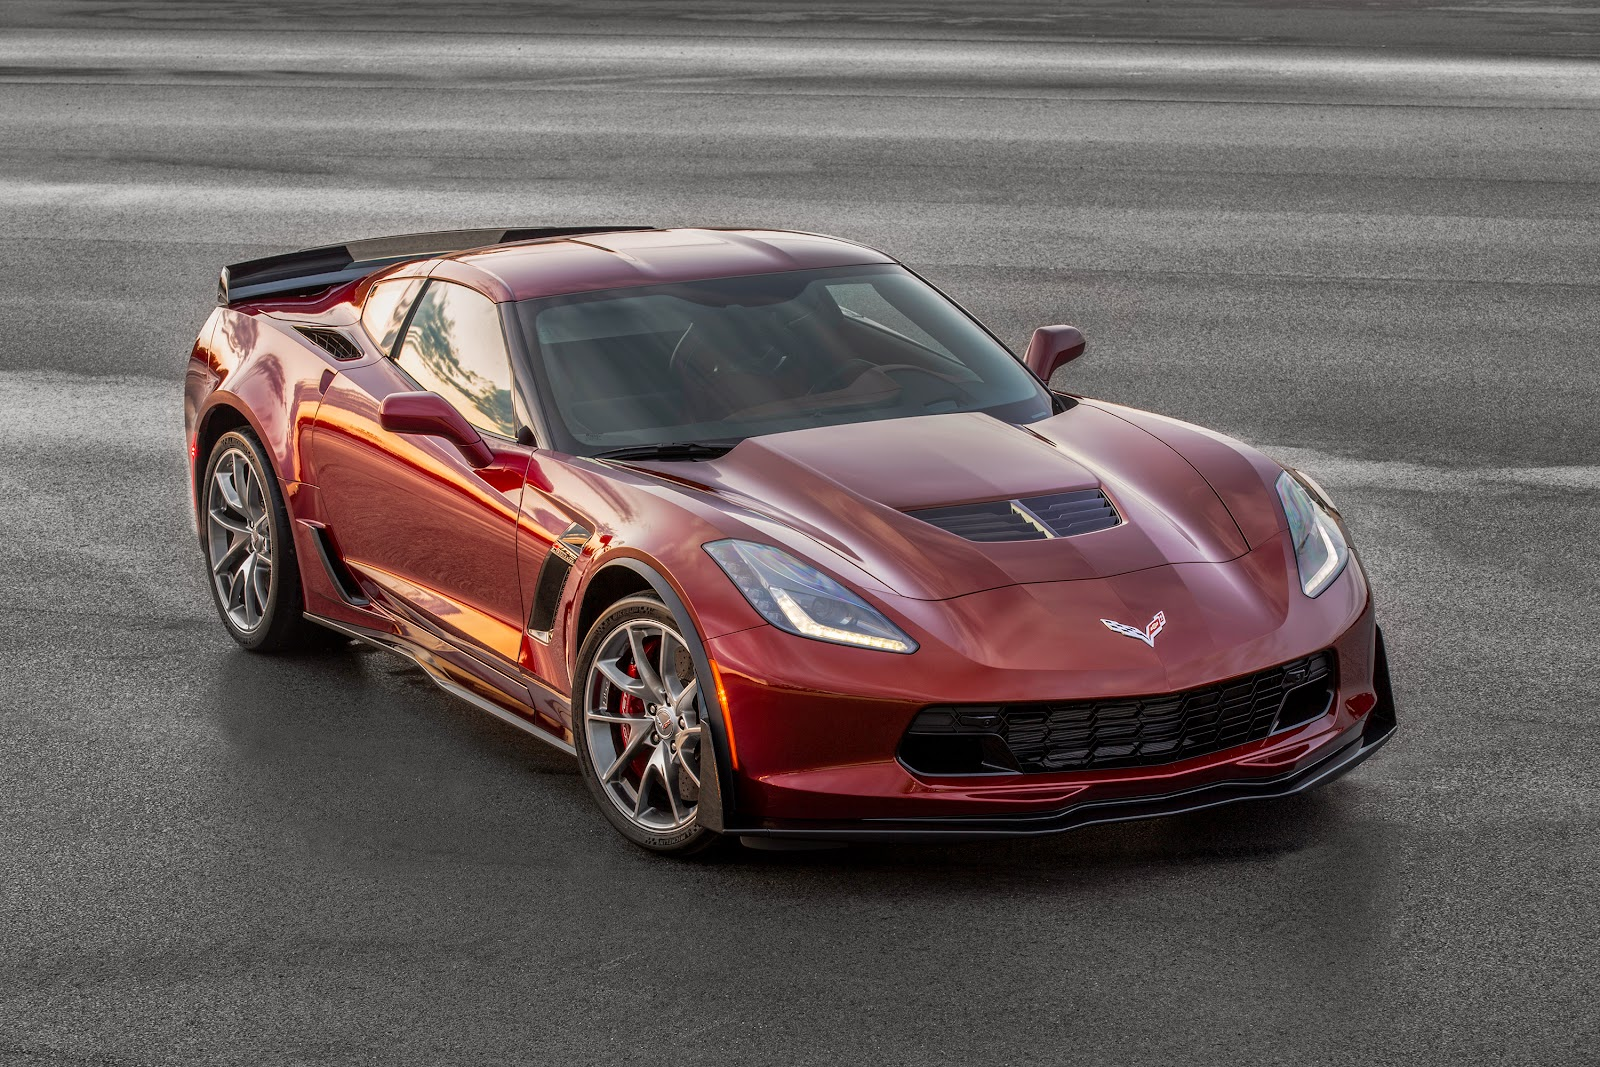 2016 Corvette Z06 Is The Most Capable Corvette Ever